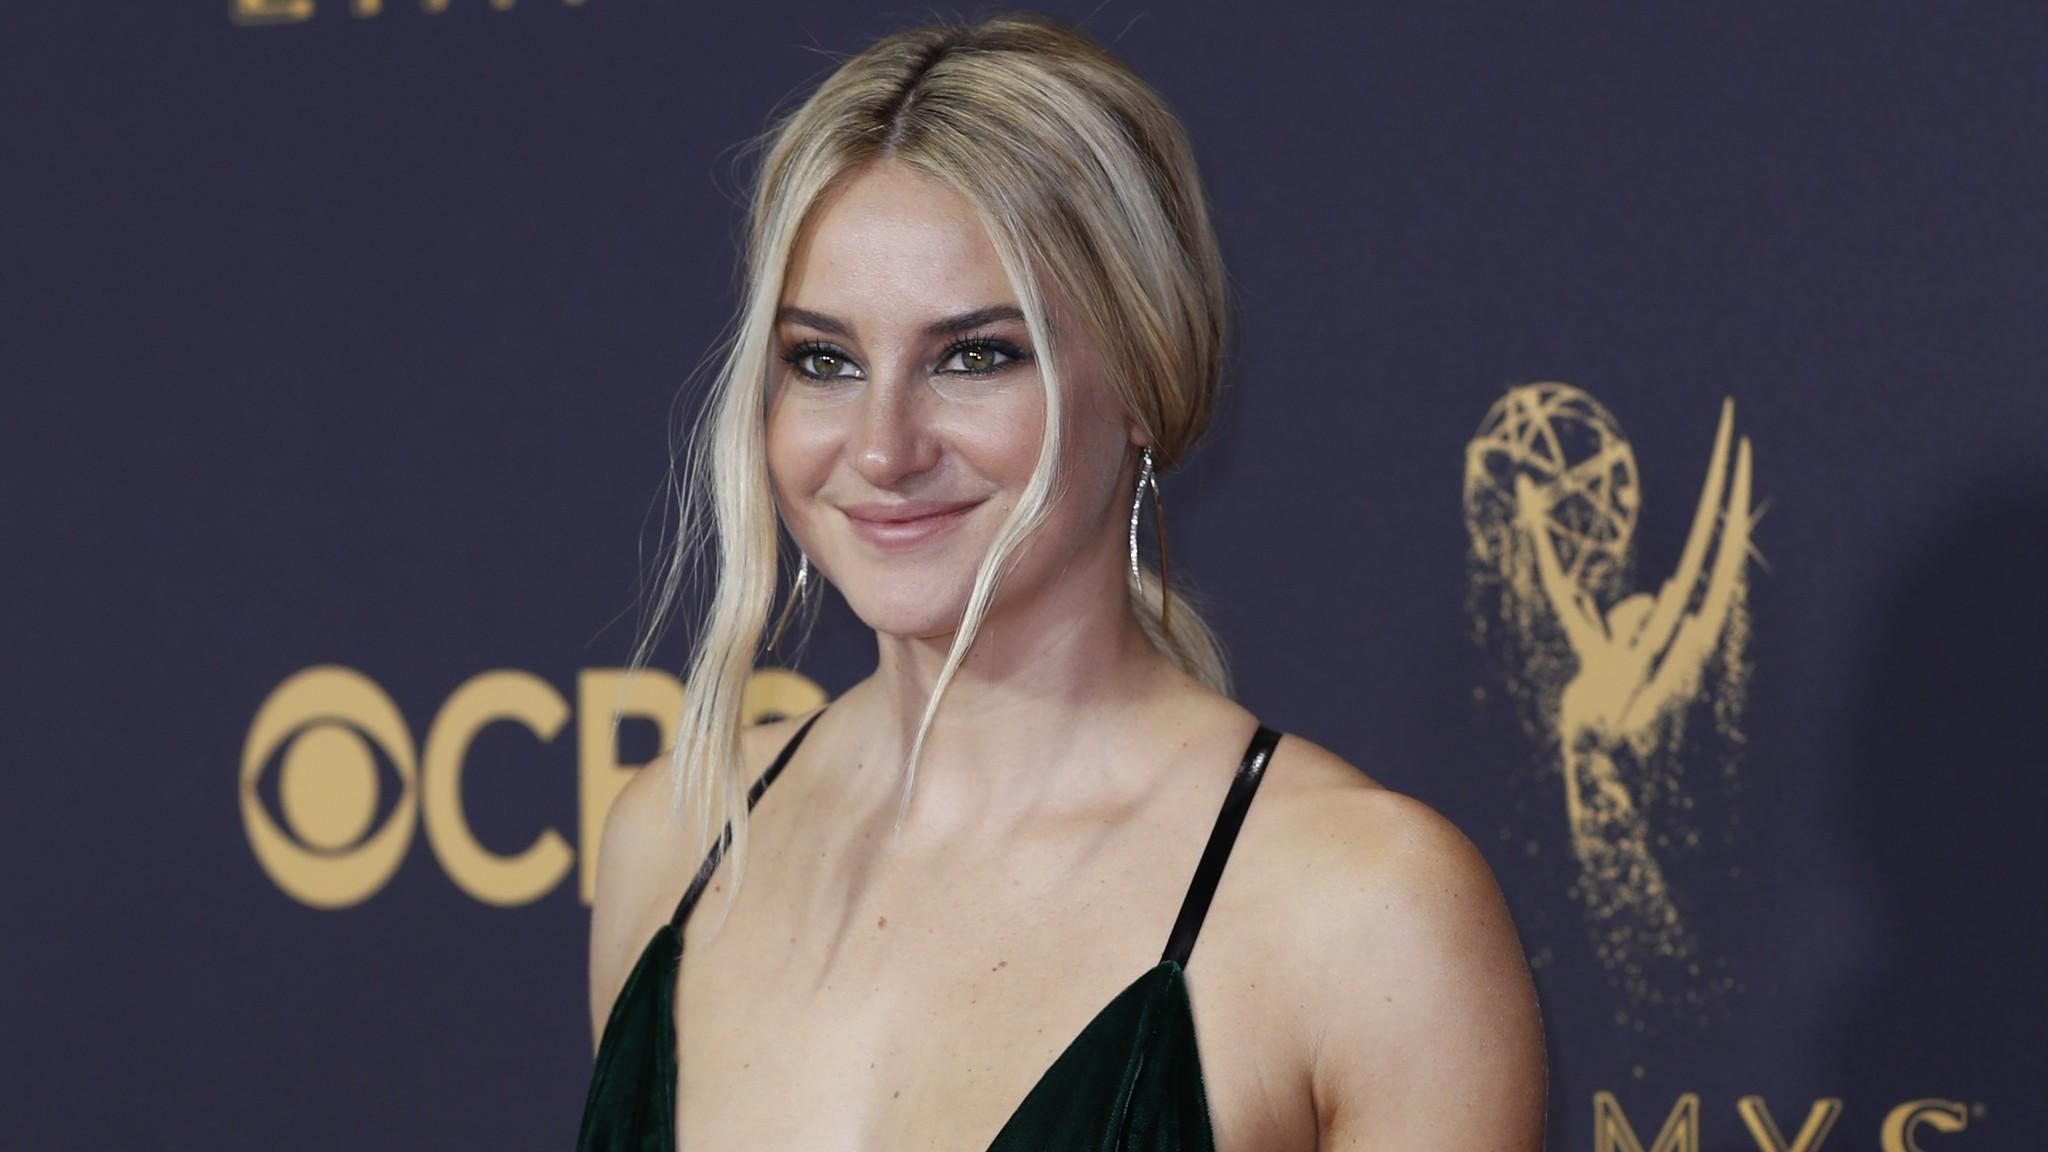 Shailene Woodley arriving at the 69th Emmy Awards at the Microsoft Theater in Los Angeles. (Allen J. Schaben / Los Angeles Times)